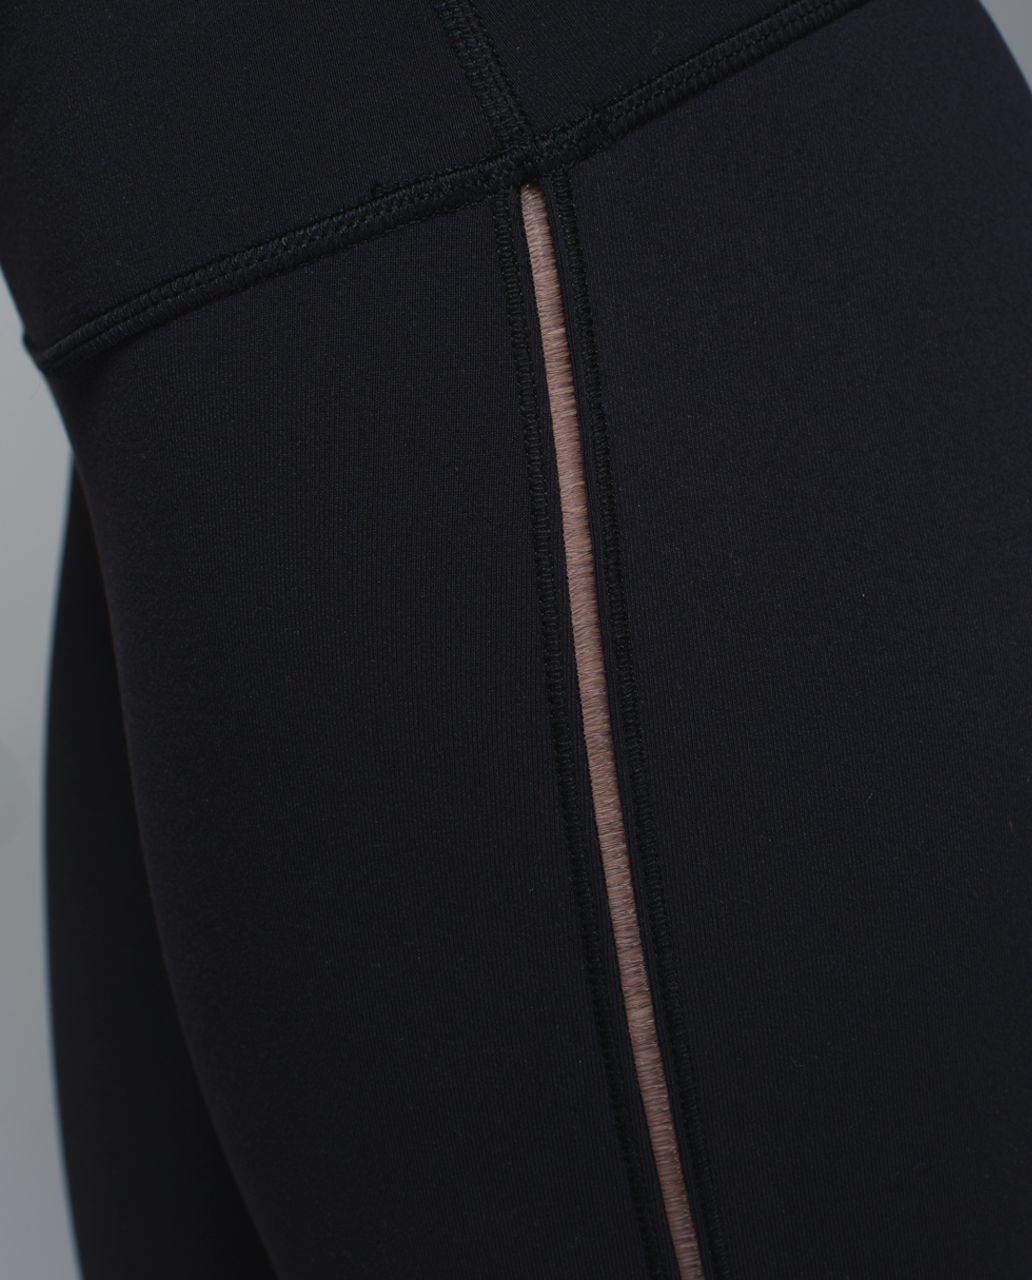 Lululemon High Times Pant (Mesh) - Black